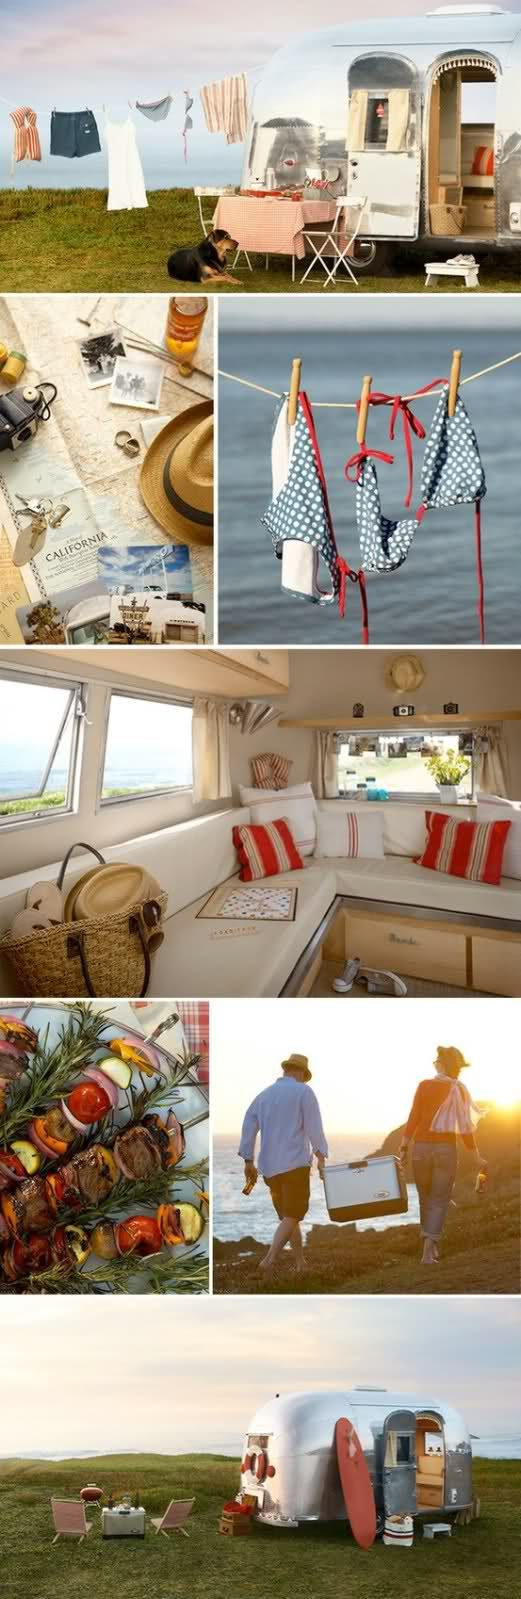 the cutest holiday ever.: Airstream Campers, Dreams, Road Trips, Camps, Beach, Roads Trips, Air Stream, Airstream Trailers, Vintage Campers